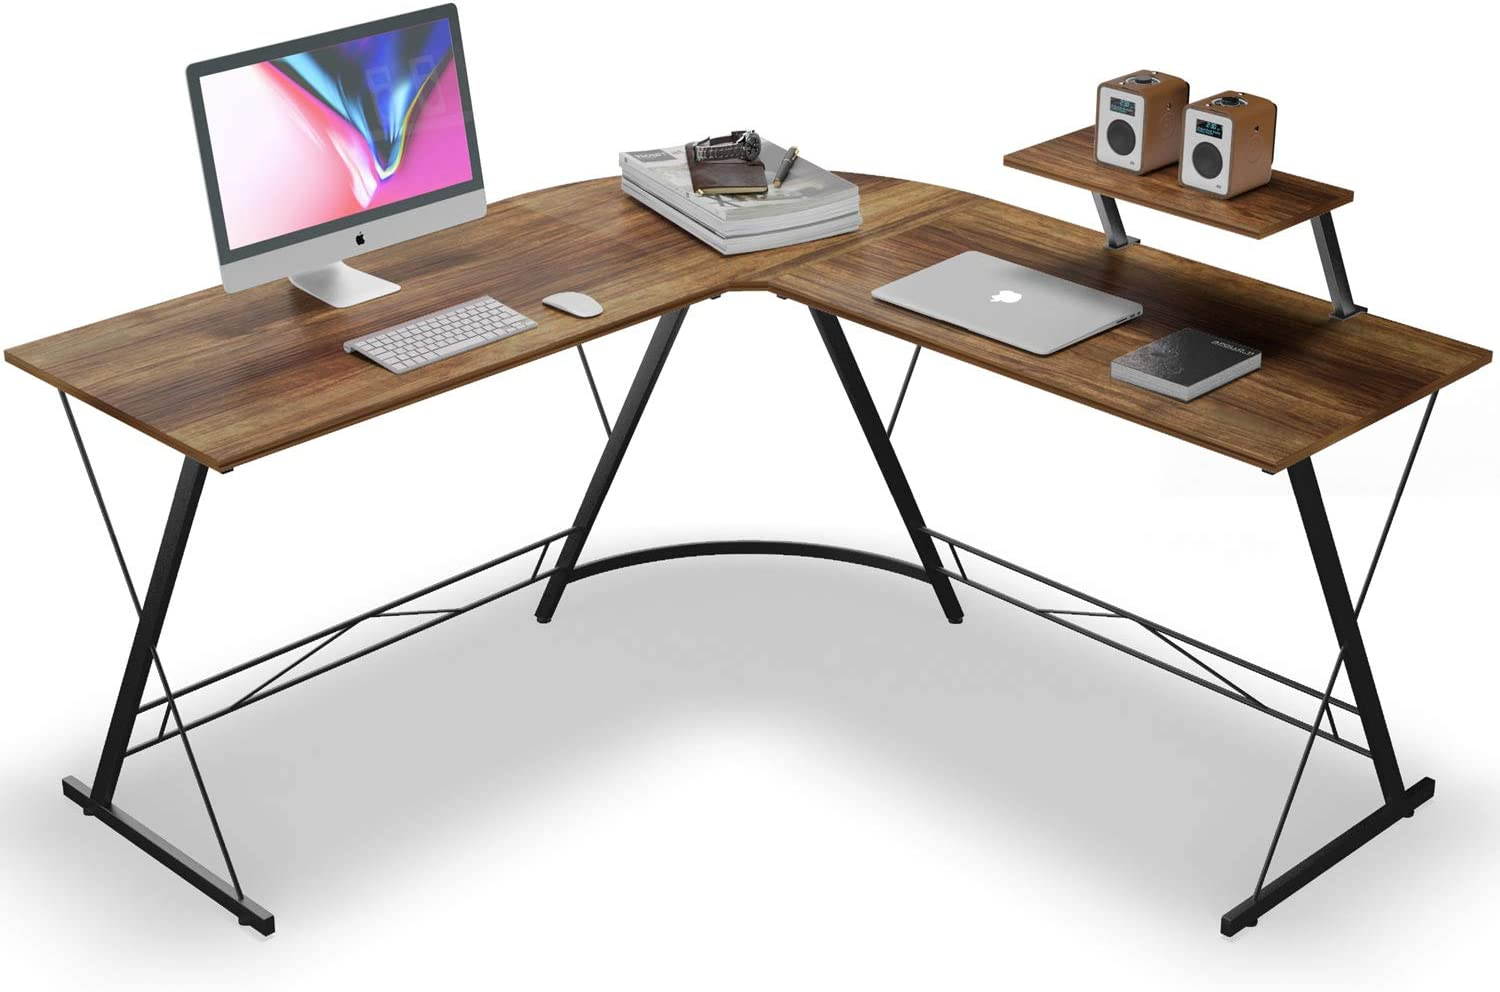 L Shaped Desk Home Office Desk with Round Corner Computer Desk with Large Monitor Stand Desk Workstation,Vintage